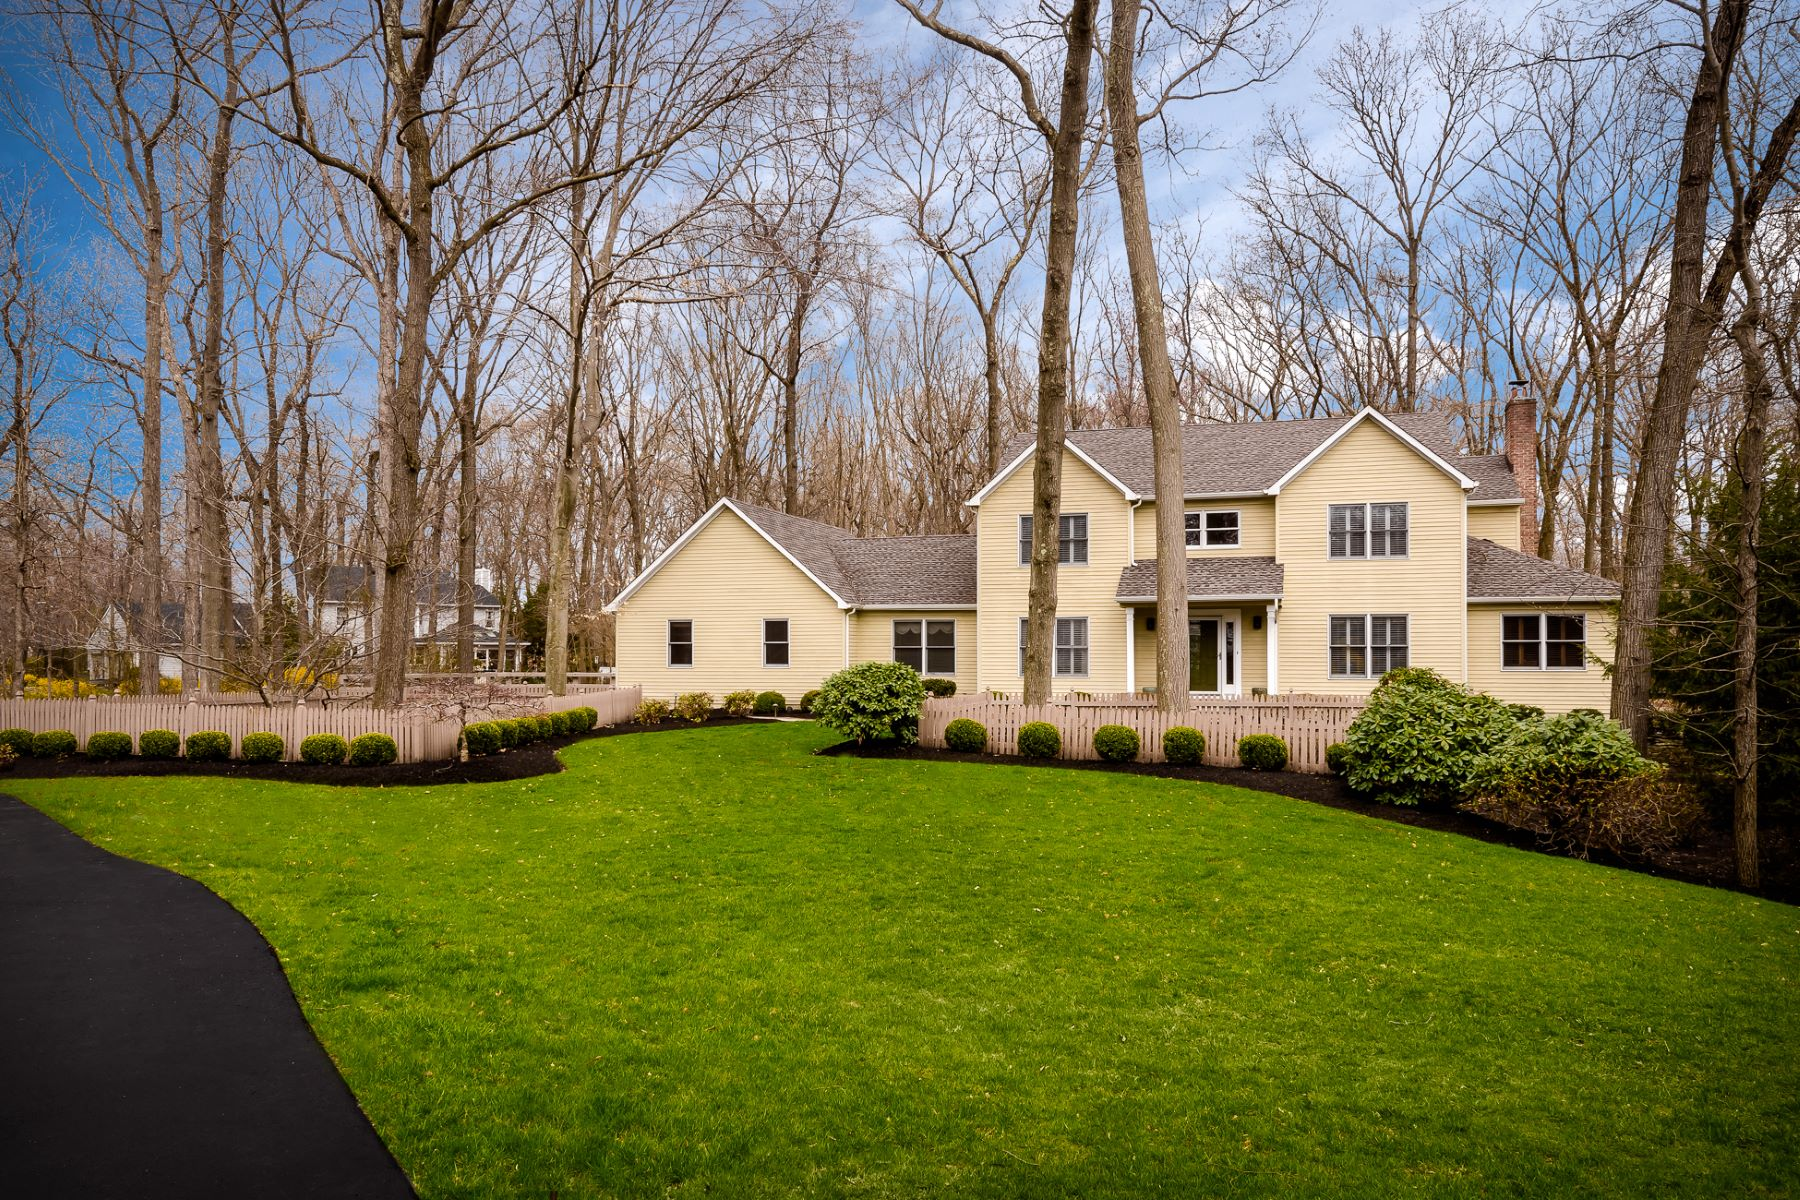 Single Family Homes for Sale at A Premium Position on a Manicured Cul-De-Sac 16 Blackhawk Court, West Windsor, New Jersey 08550 United States